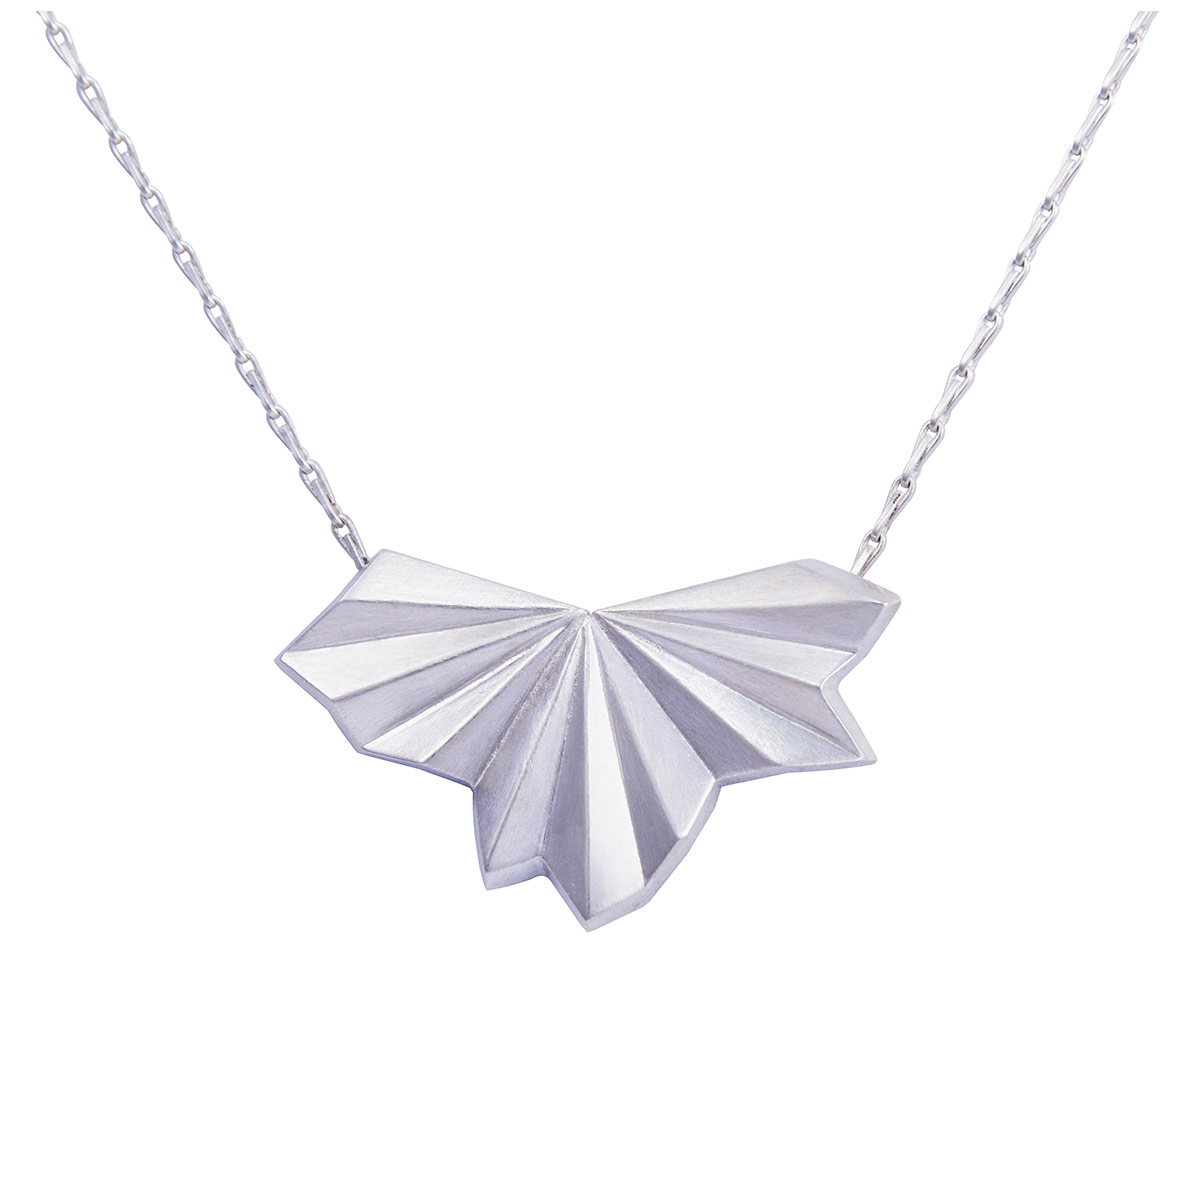 Silver Pleated Fan Necklace by Alice Barnes Jewellery